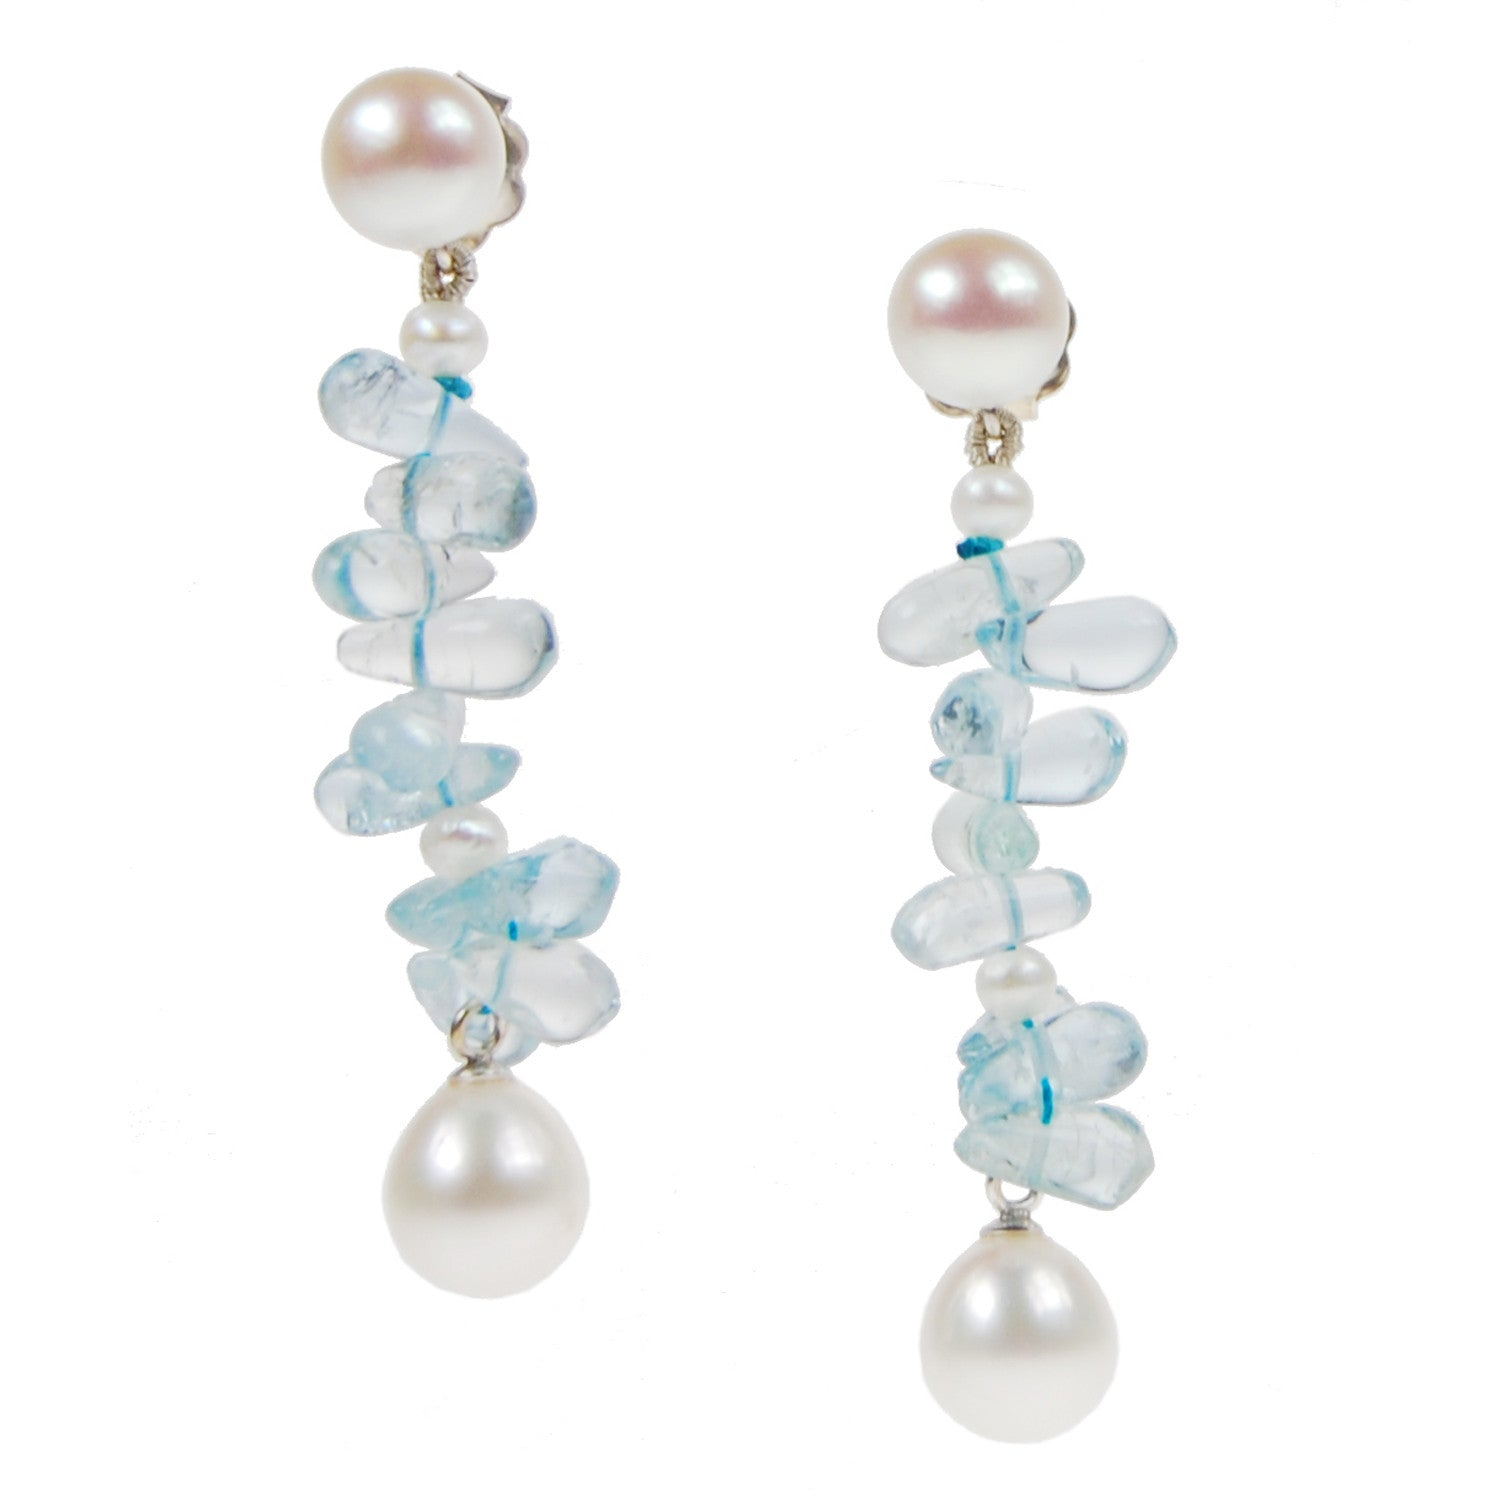 Long 'Twinkling Light' Earrings in White and Aquamarine